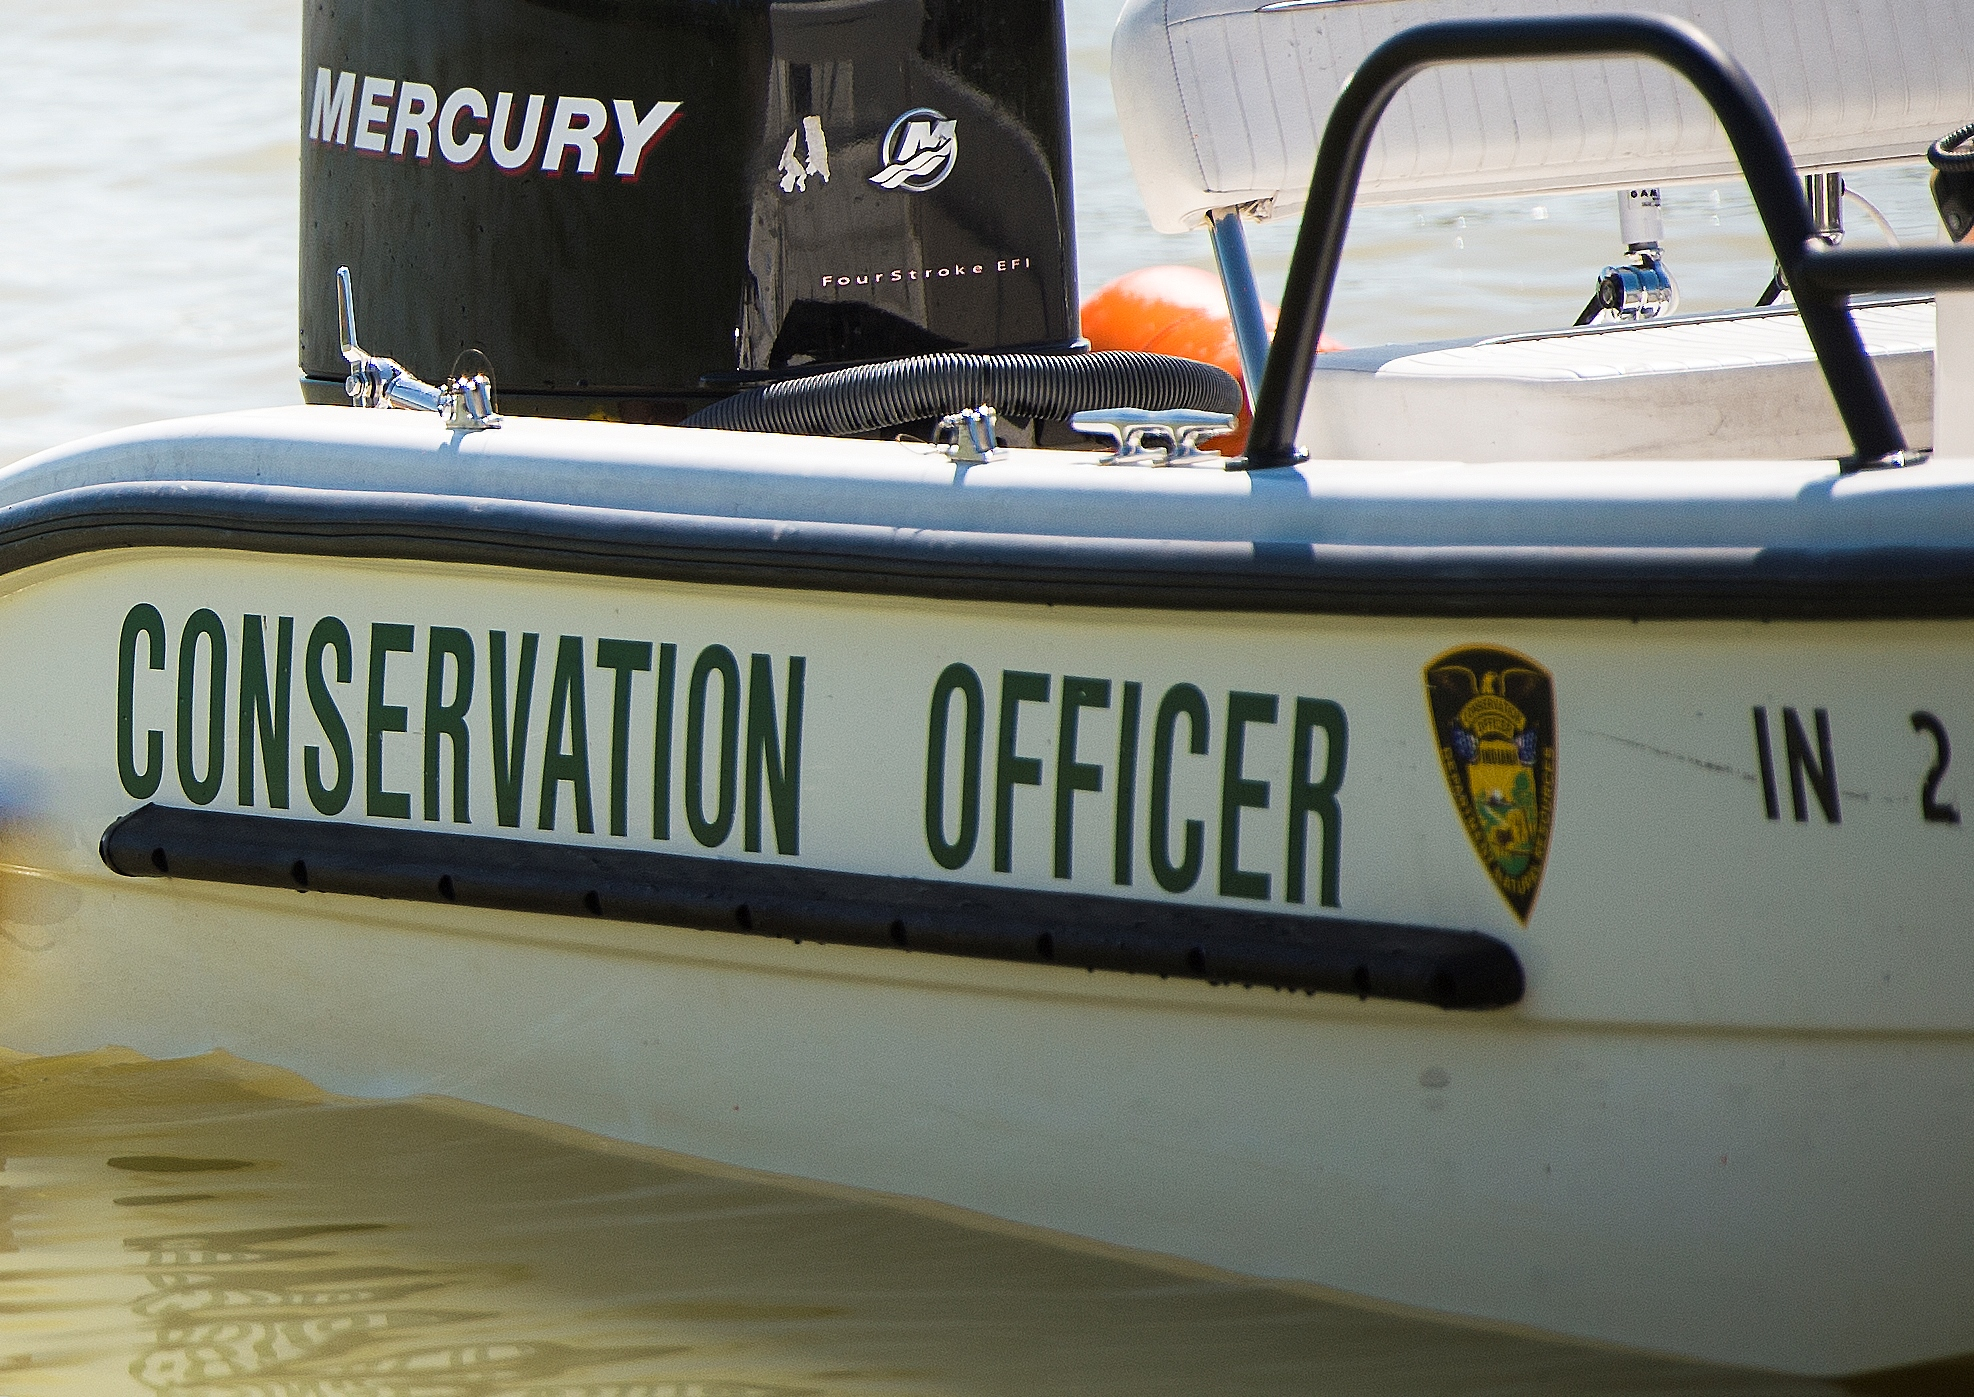 Indiana Conservation Officer_179039